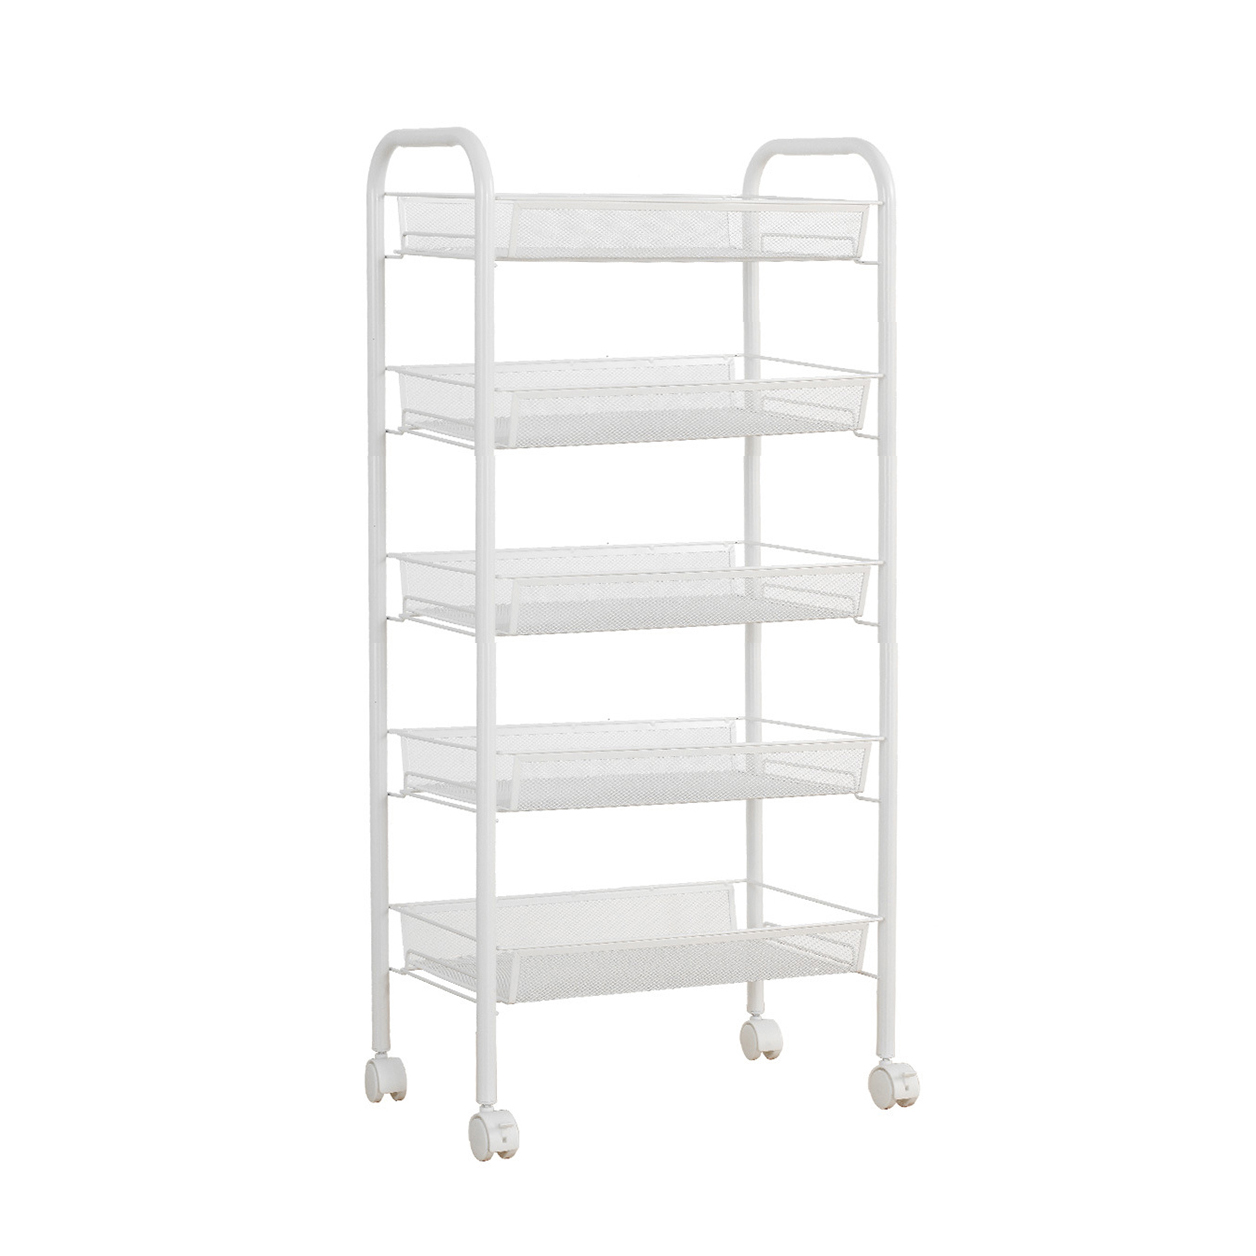 Captivating SDFC White Metal Mesh Rolling Cart Storage Rack Shelves With Wheels For Kitchen  Pantry Office Bedroom Bathroom Washroom Laundry On Aliexpress.com | Alibaba  ...